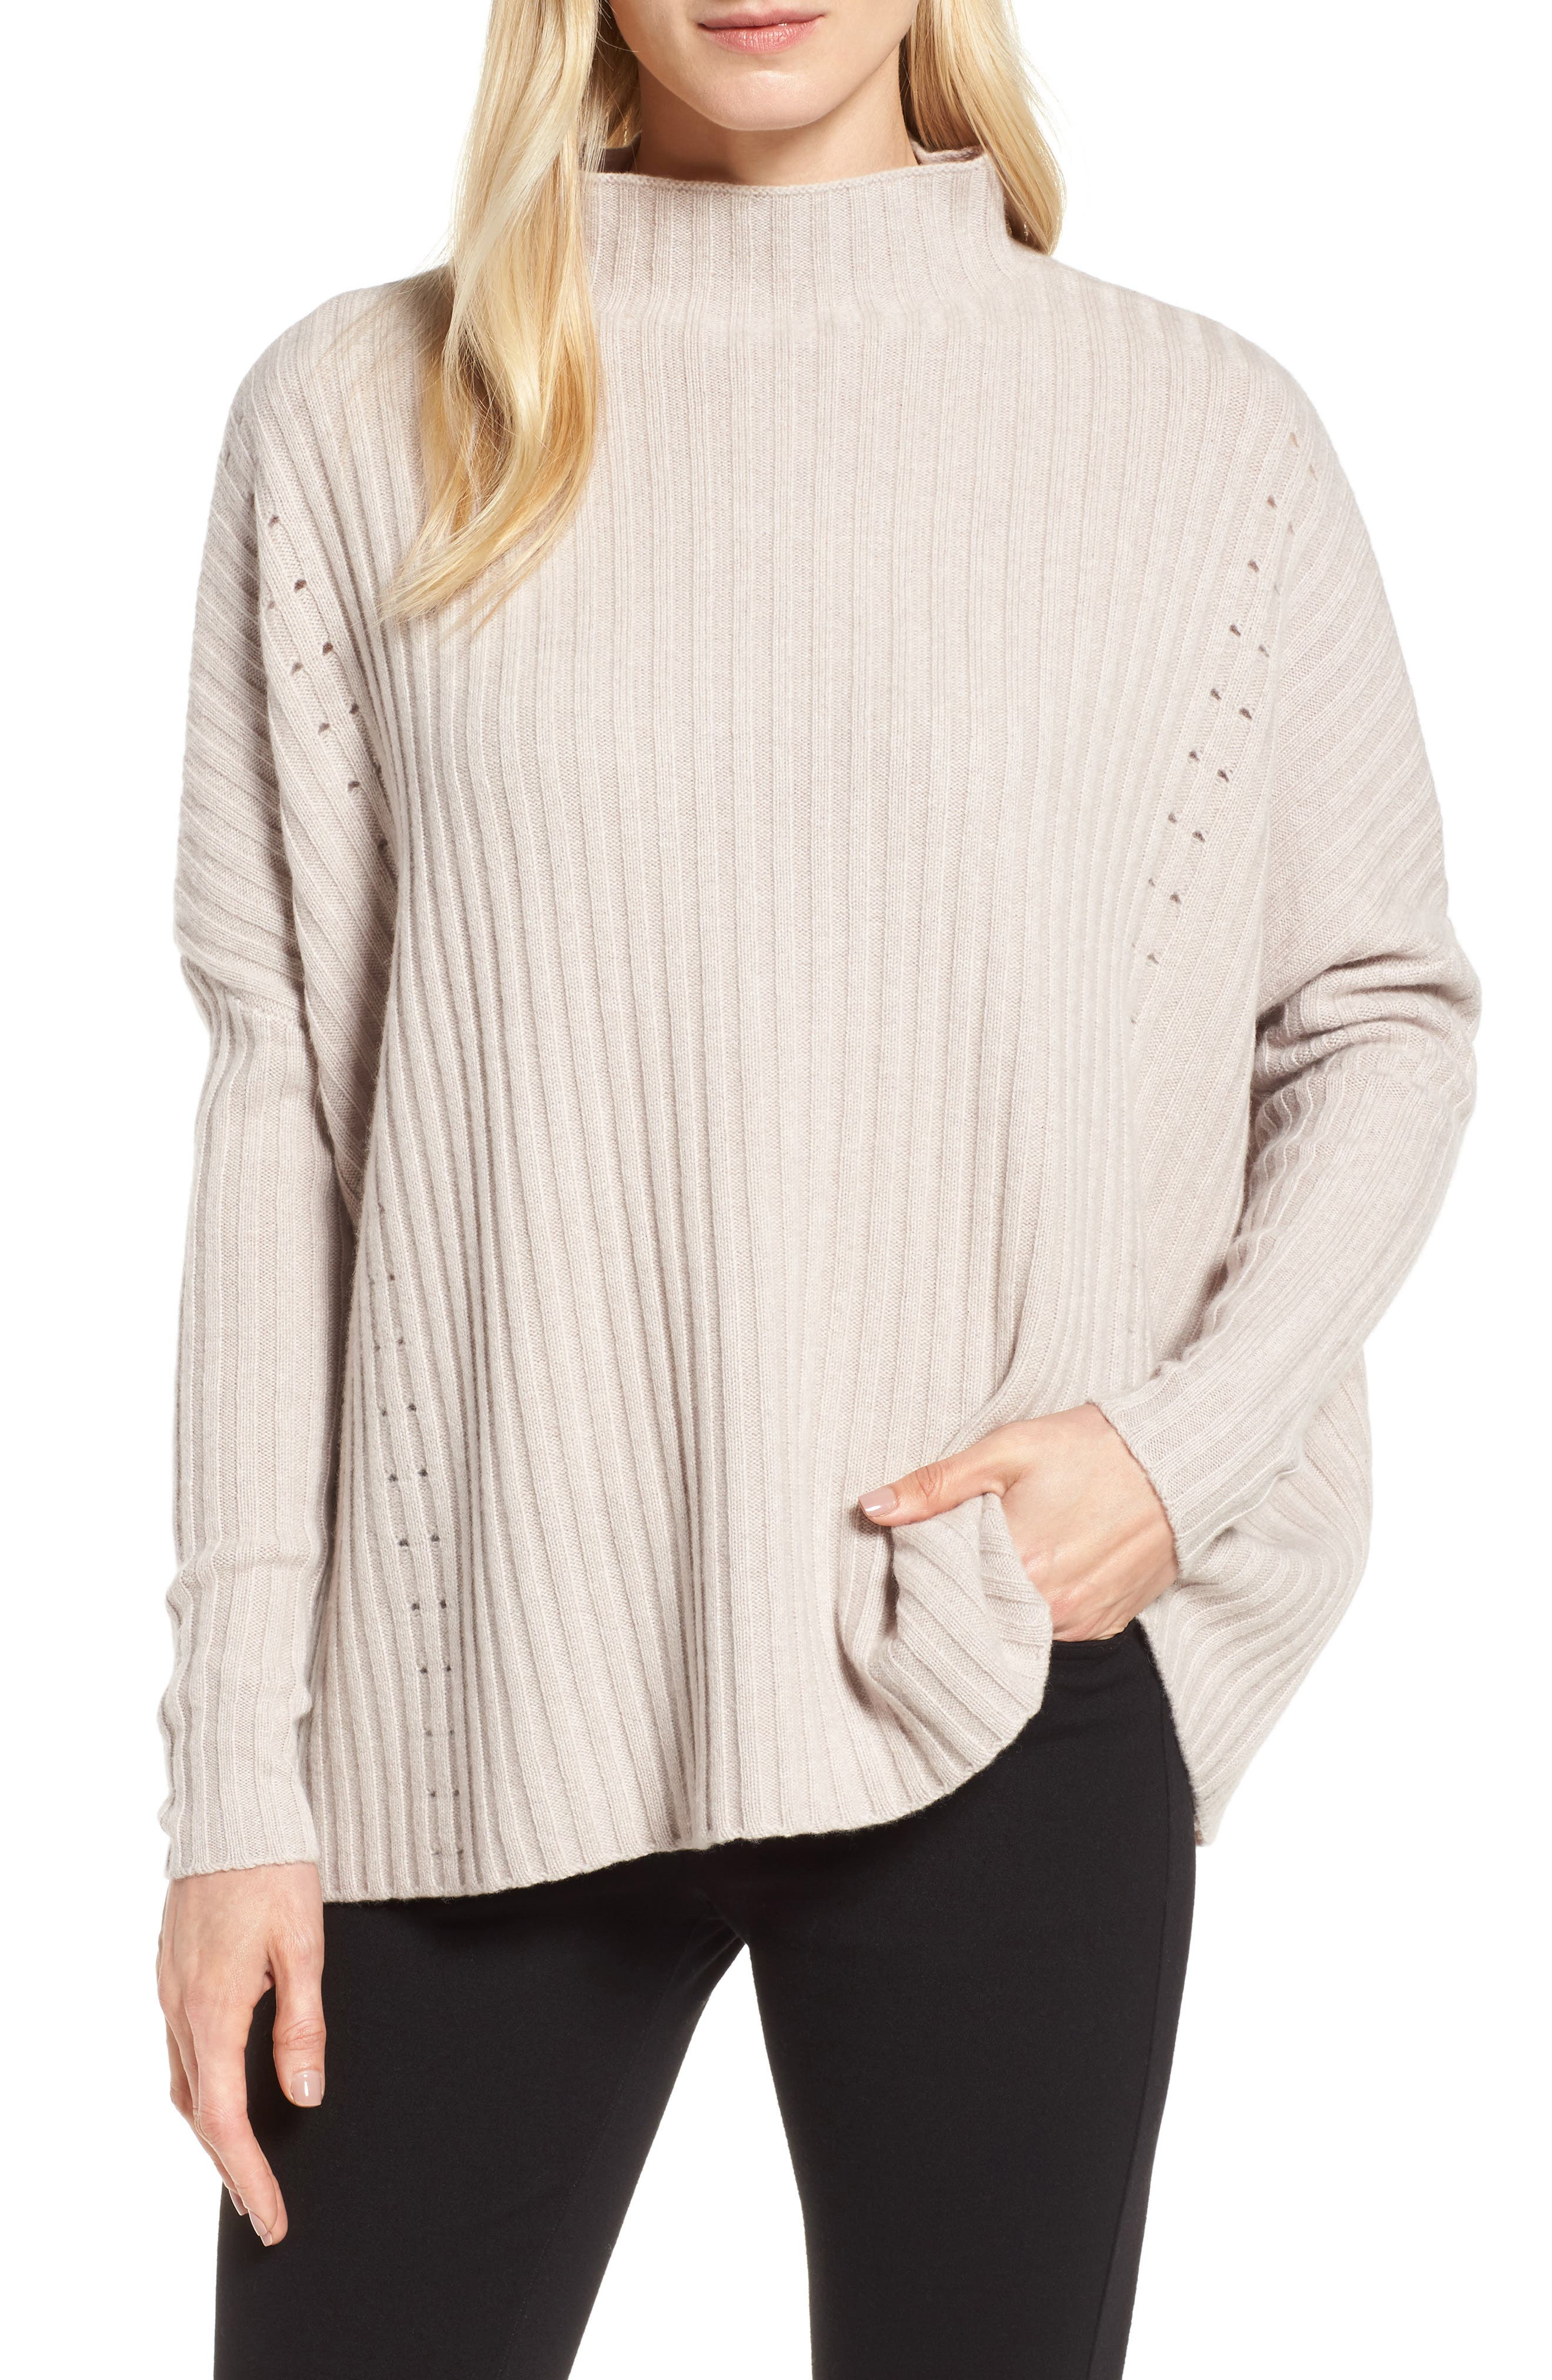 Boxy Ribbed Cashmere Sweater,                             Main thumbnail 1, color,                             270